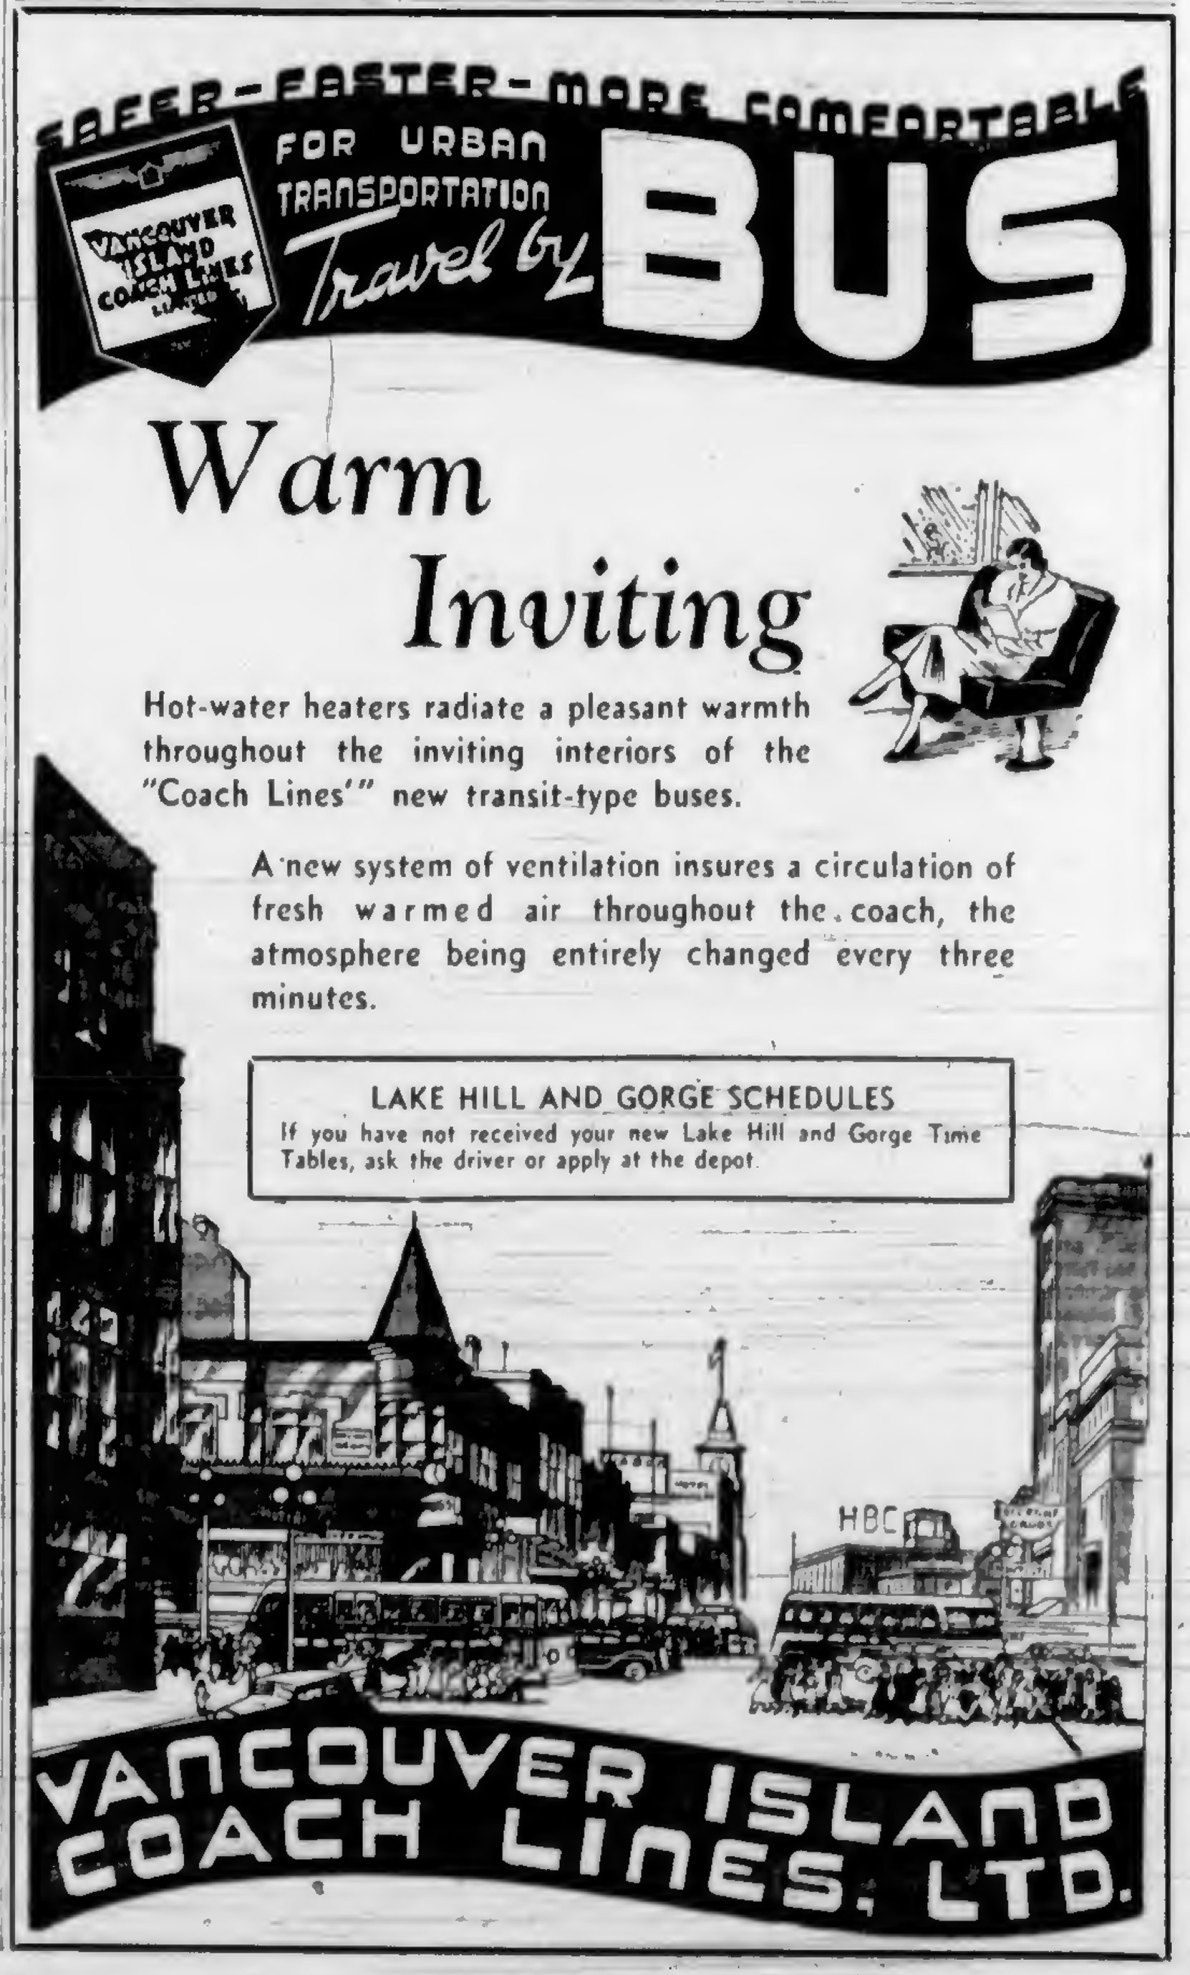 1937 advertisement for Vancouver Island Coach Lines, featuring a drawing of Douglas Street looking north from Yates Street. (Victoria Online Sightseeing Tours collection)